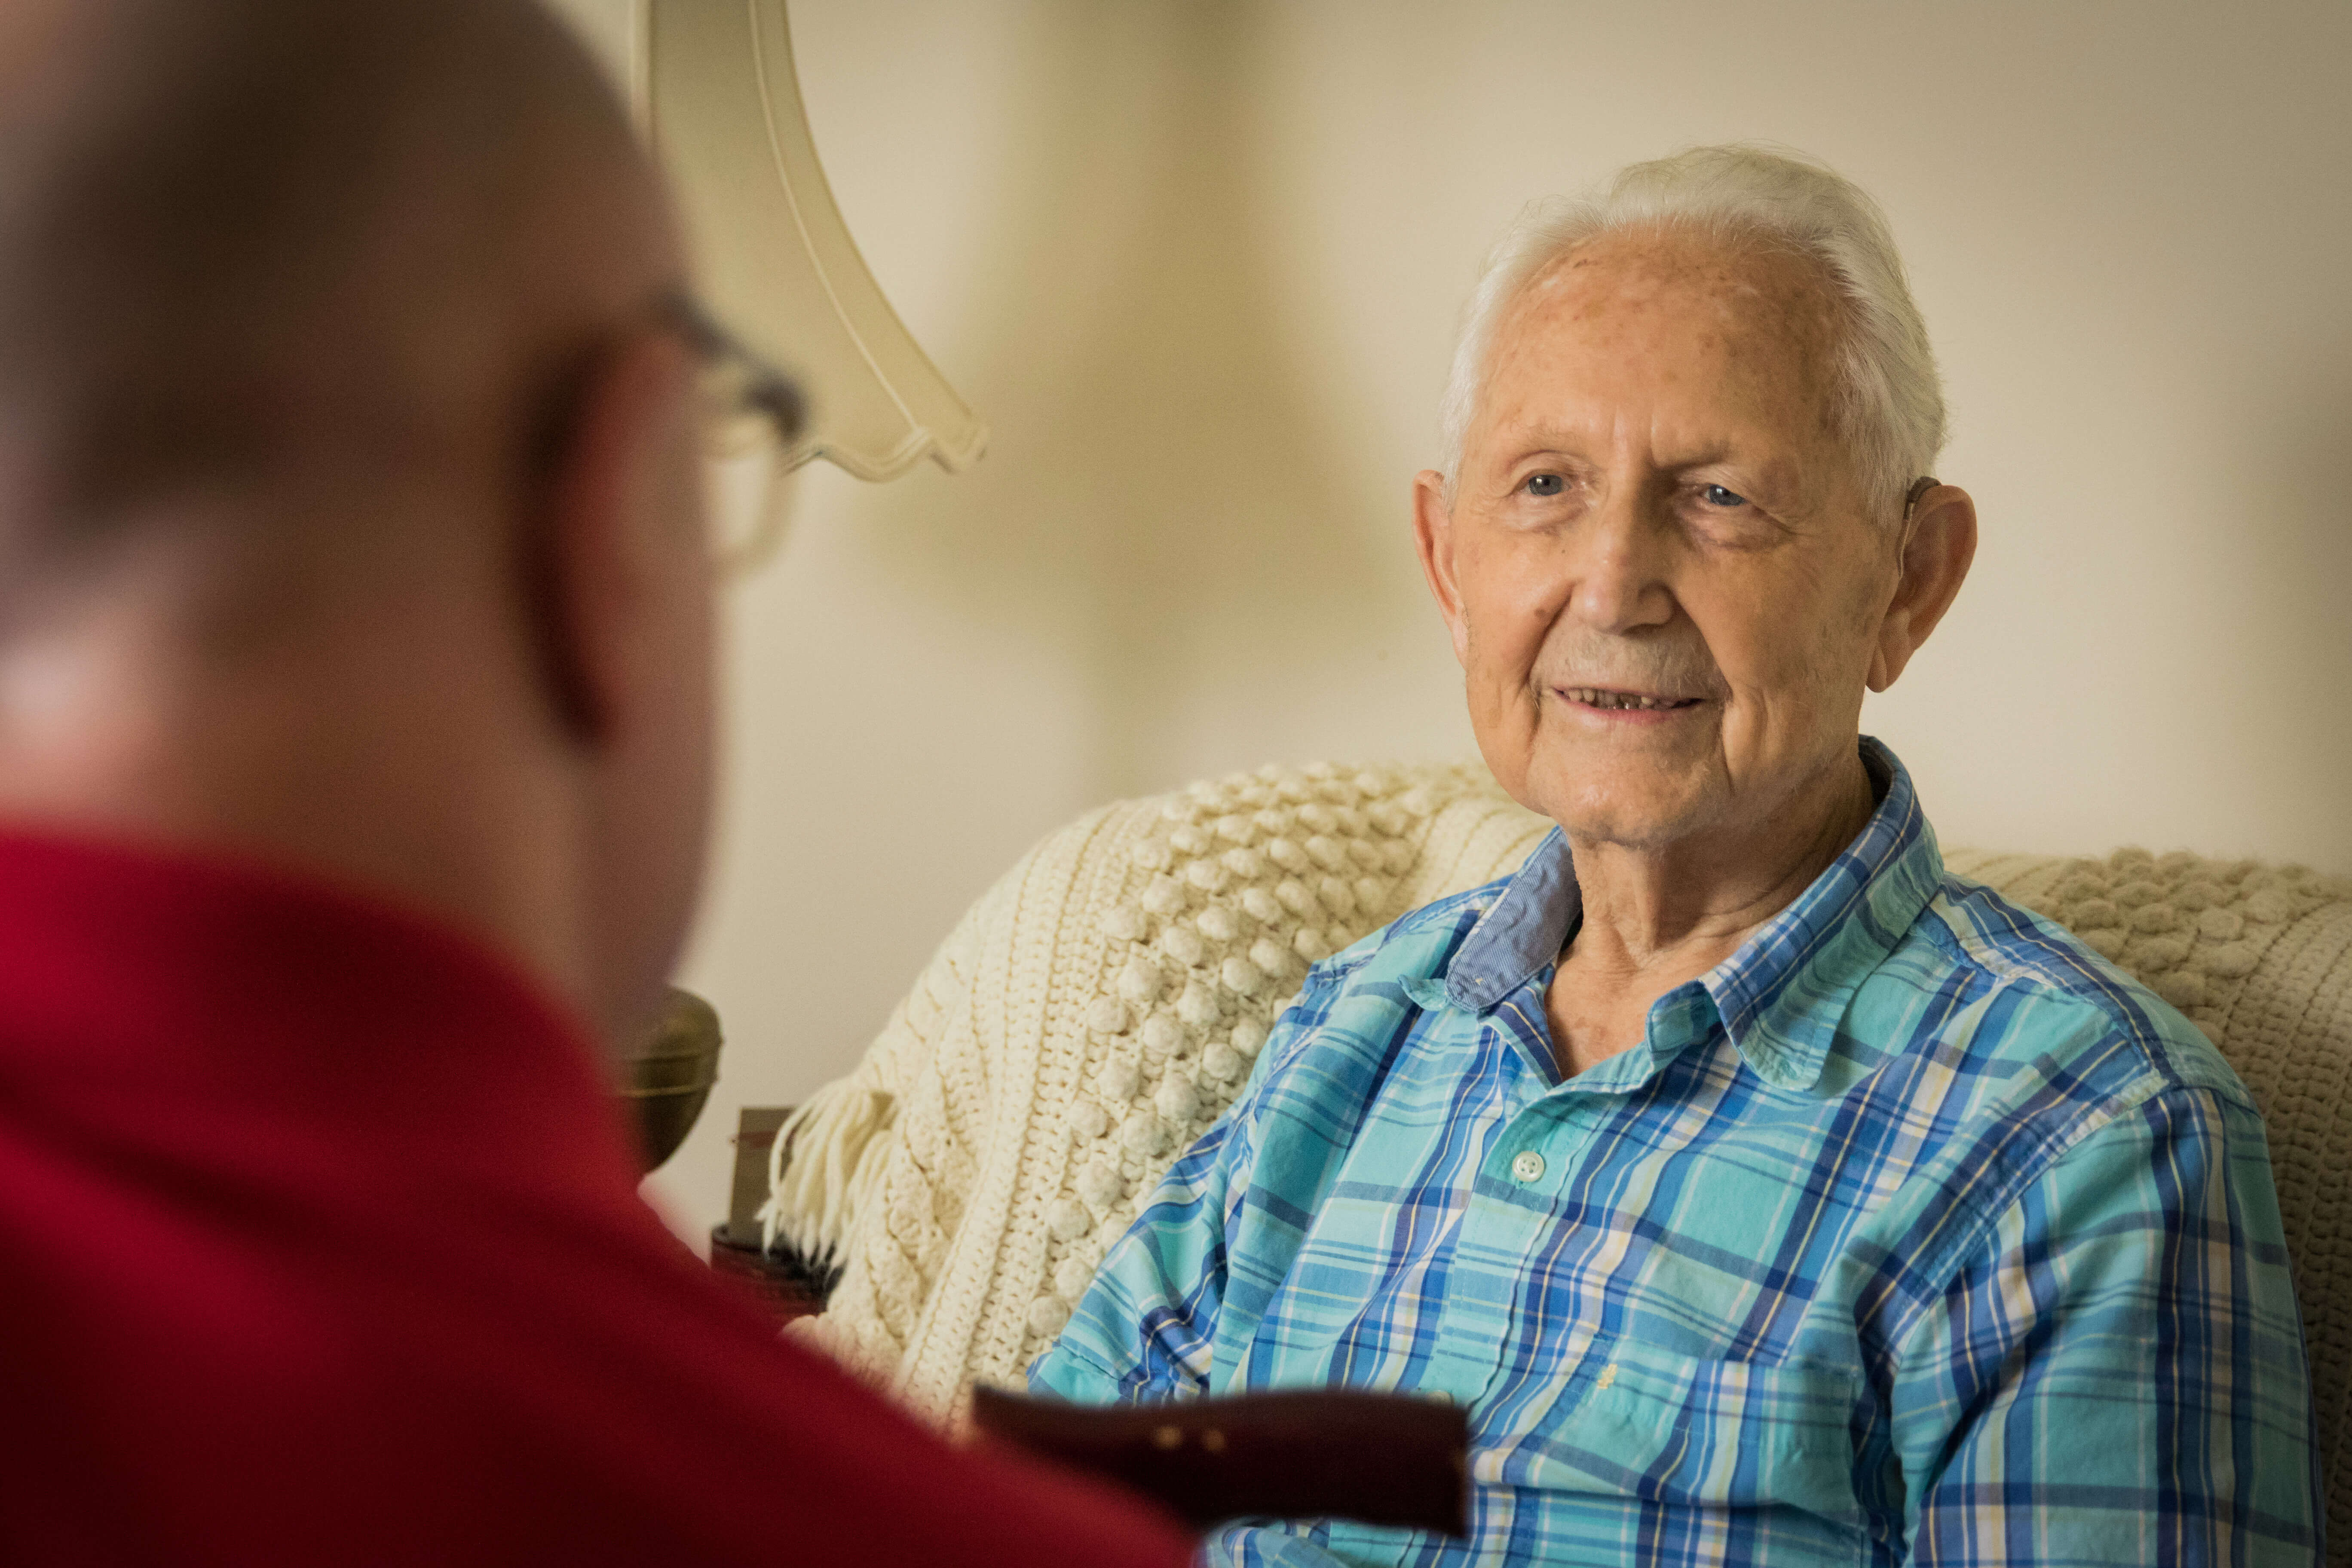 Home health social worker speaks to client, and client smiles.